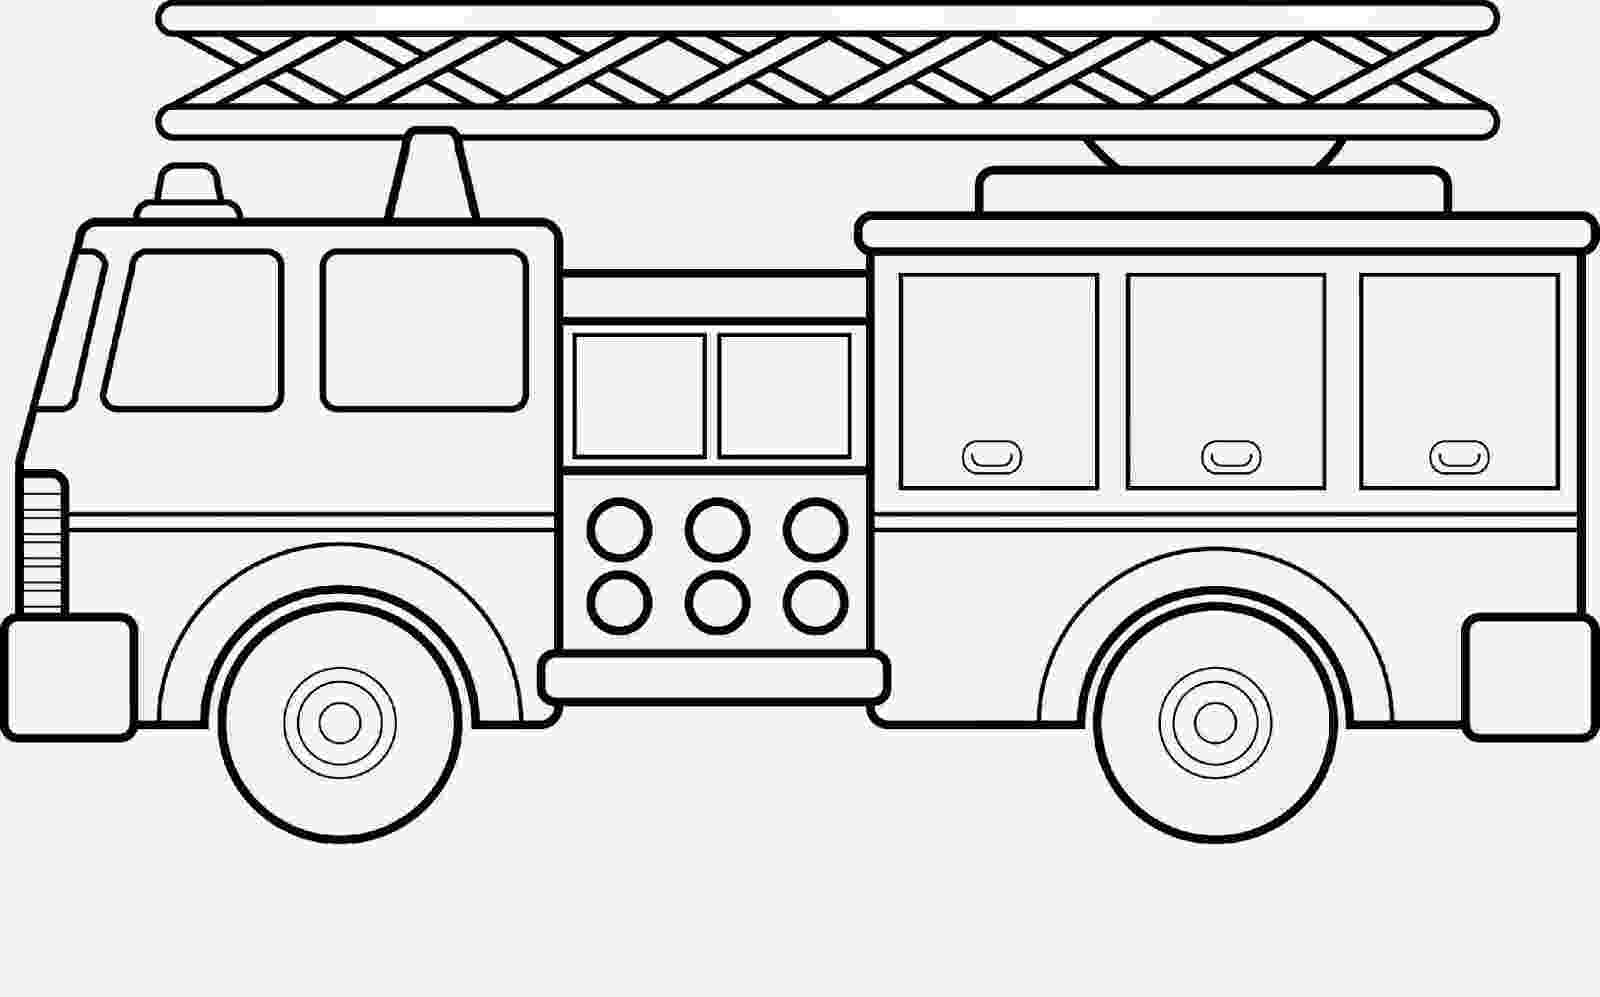 fire truck coloring pictures free fire truck coloring pages bestappsforkidscom coloring pictures truck fire